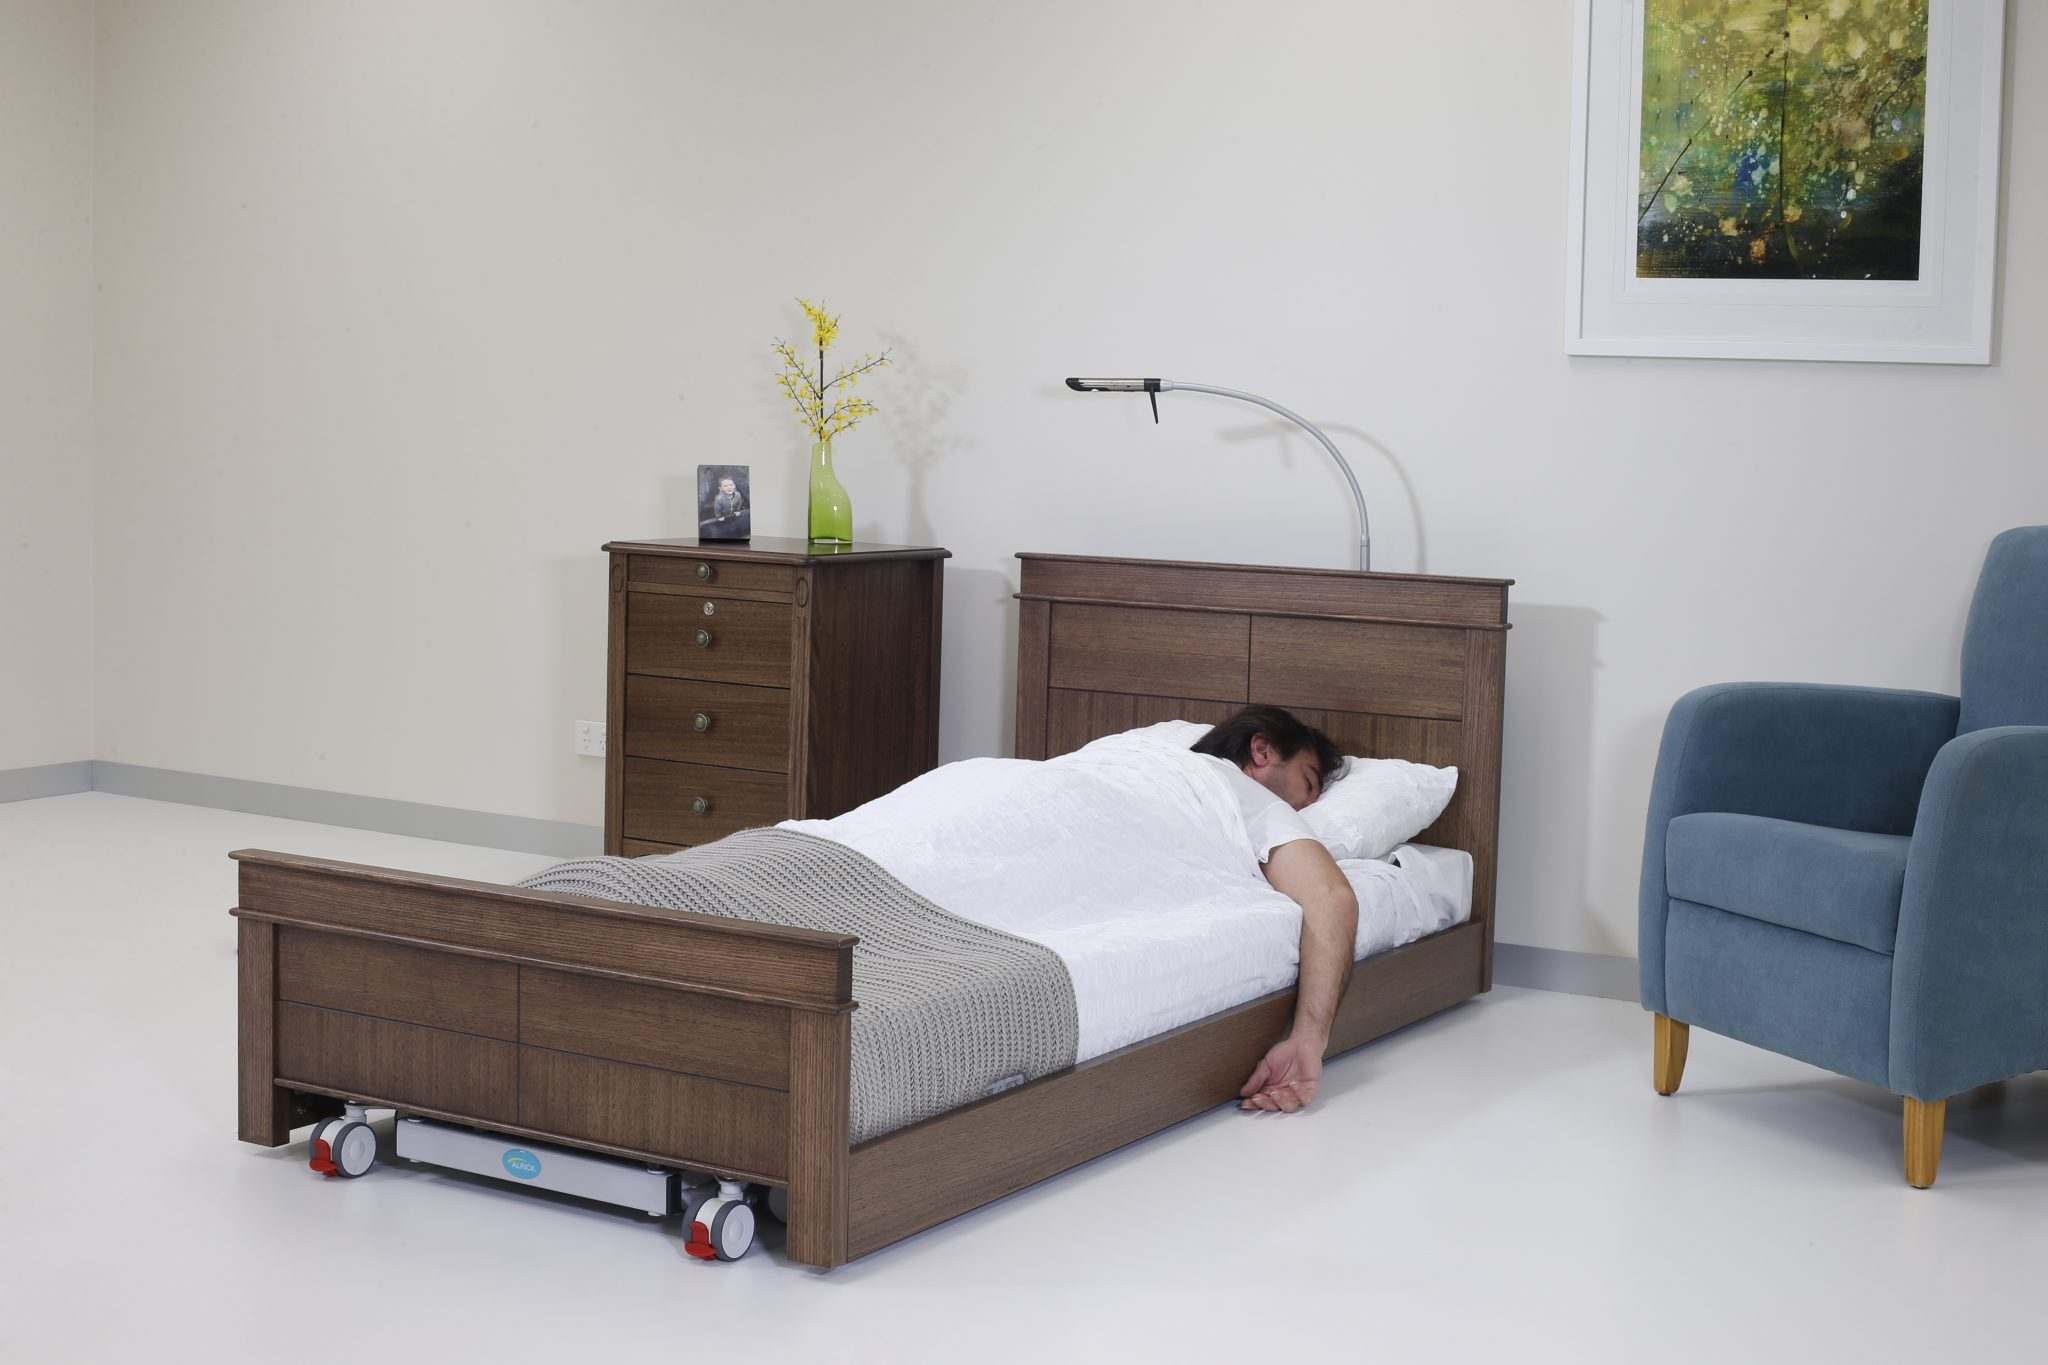 How To Prevent Falling Out Of Bed Yorkshire Care Equipment